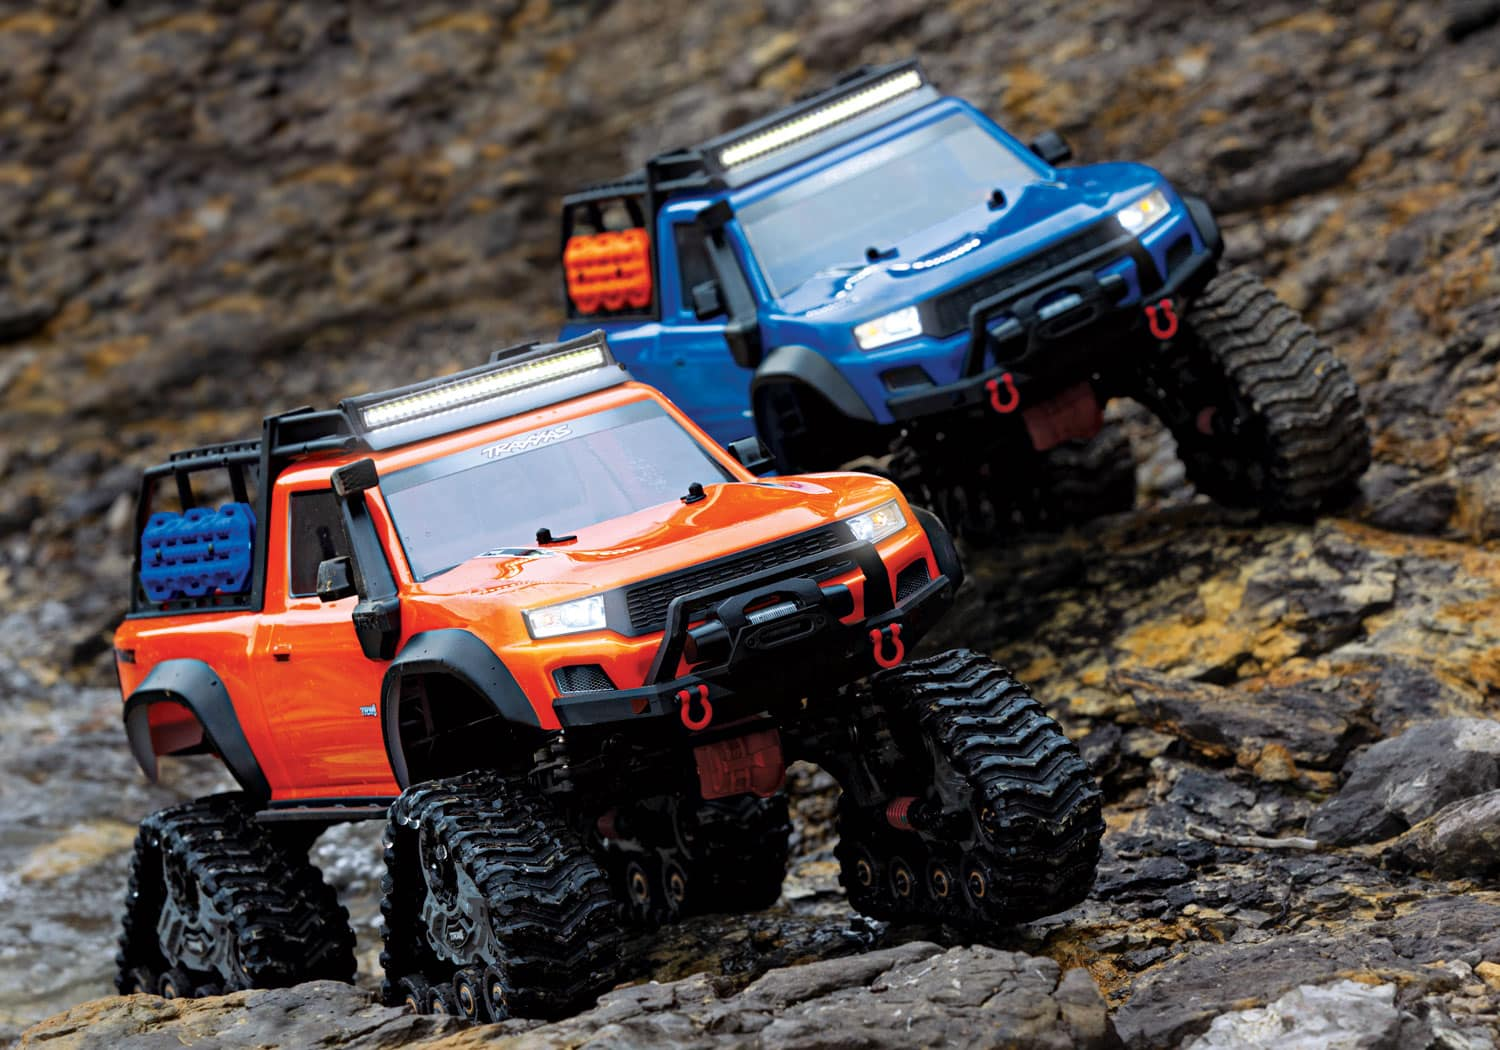 See it in Action: Traxxas TRX-4 Traxx RTR [Video]